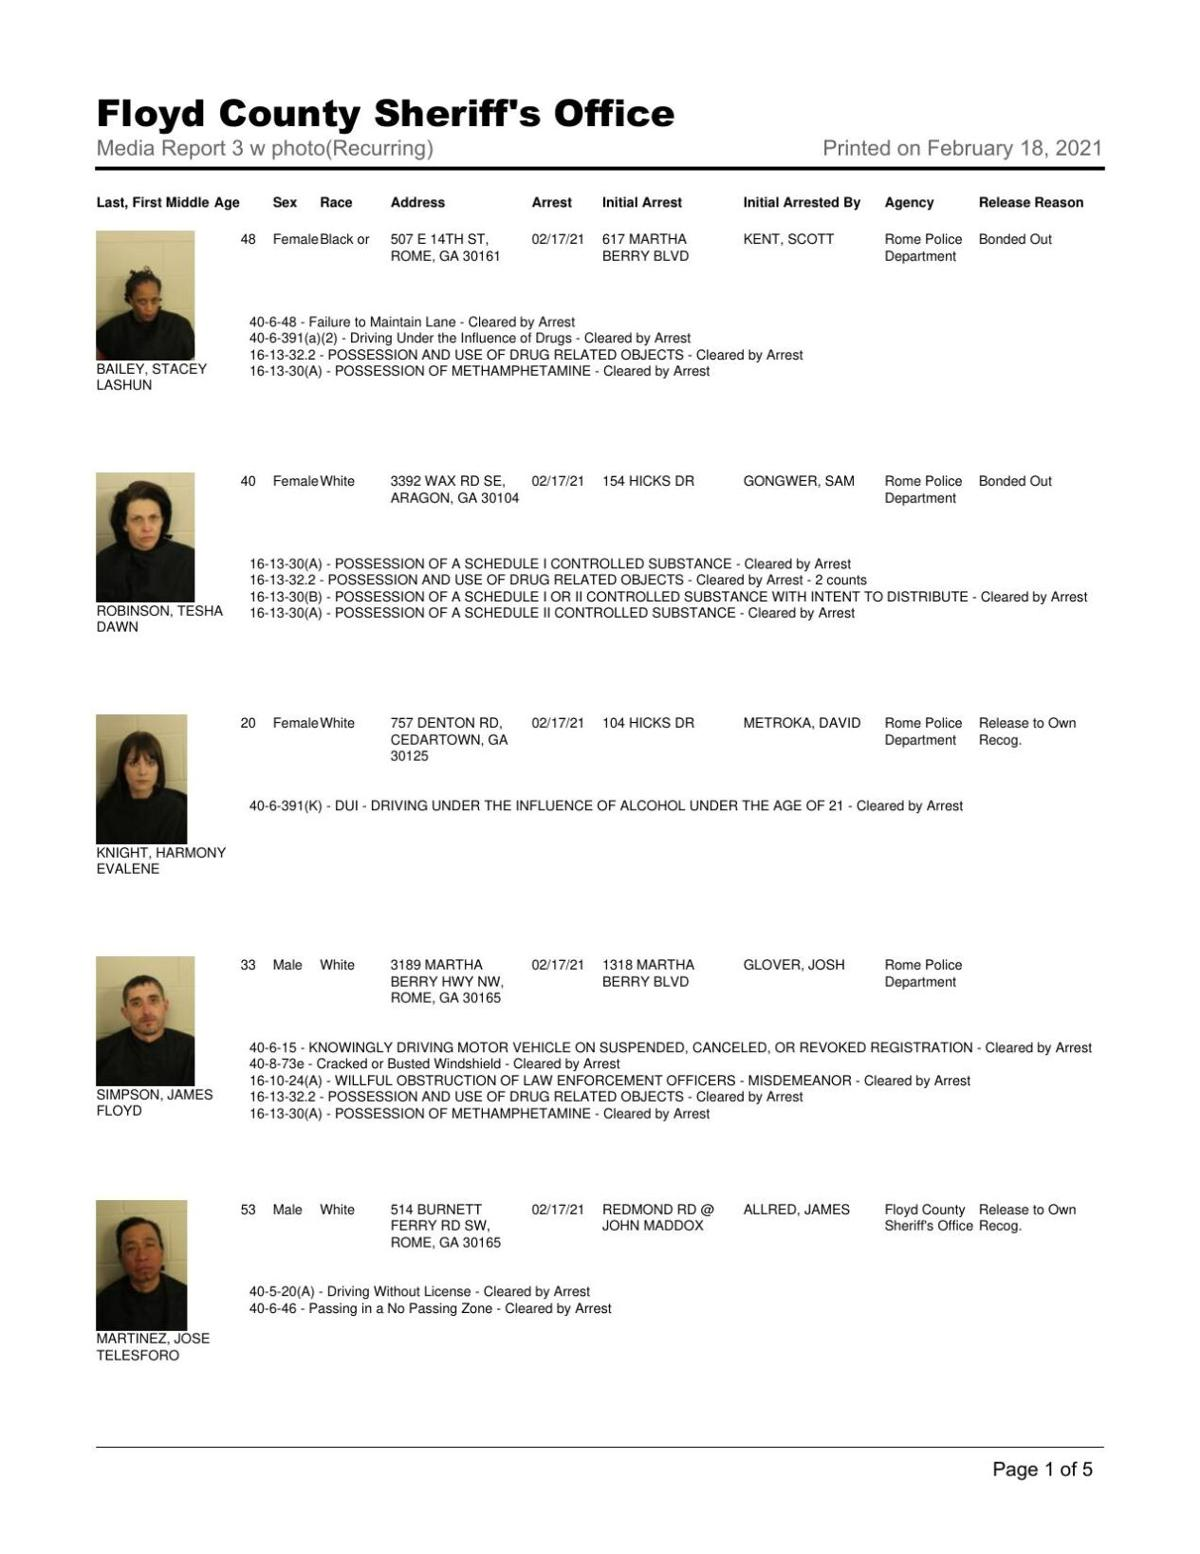 Floyd County Jail report for 8 a.m., Thursday, Feb. 18